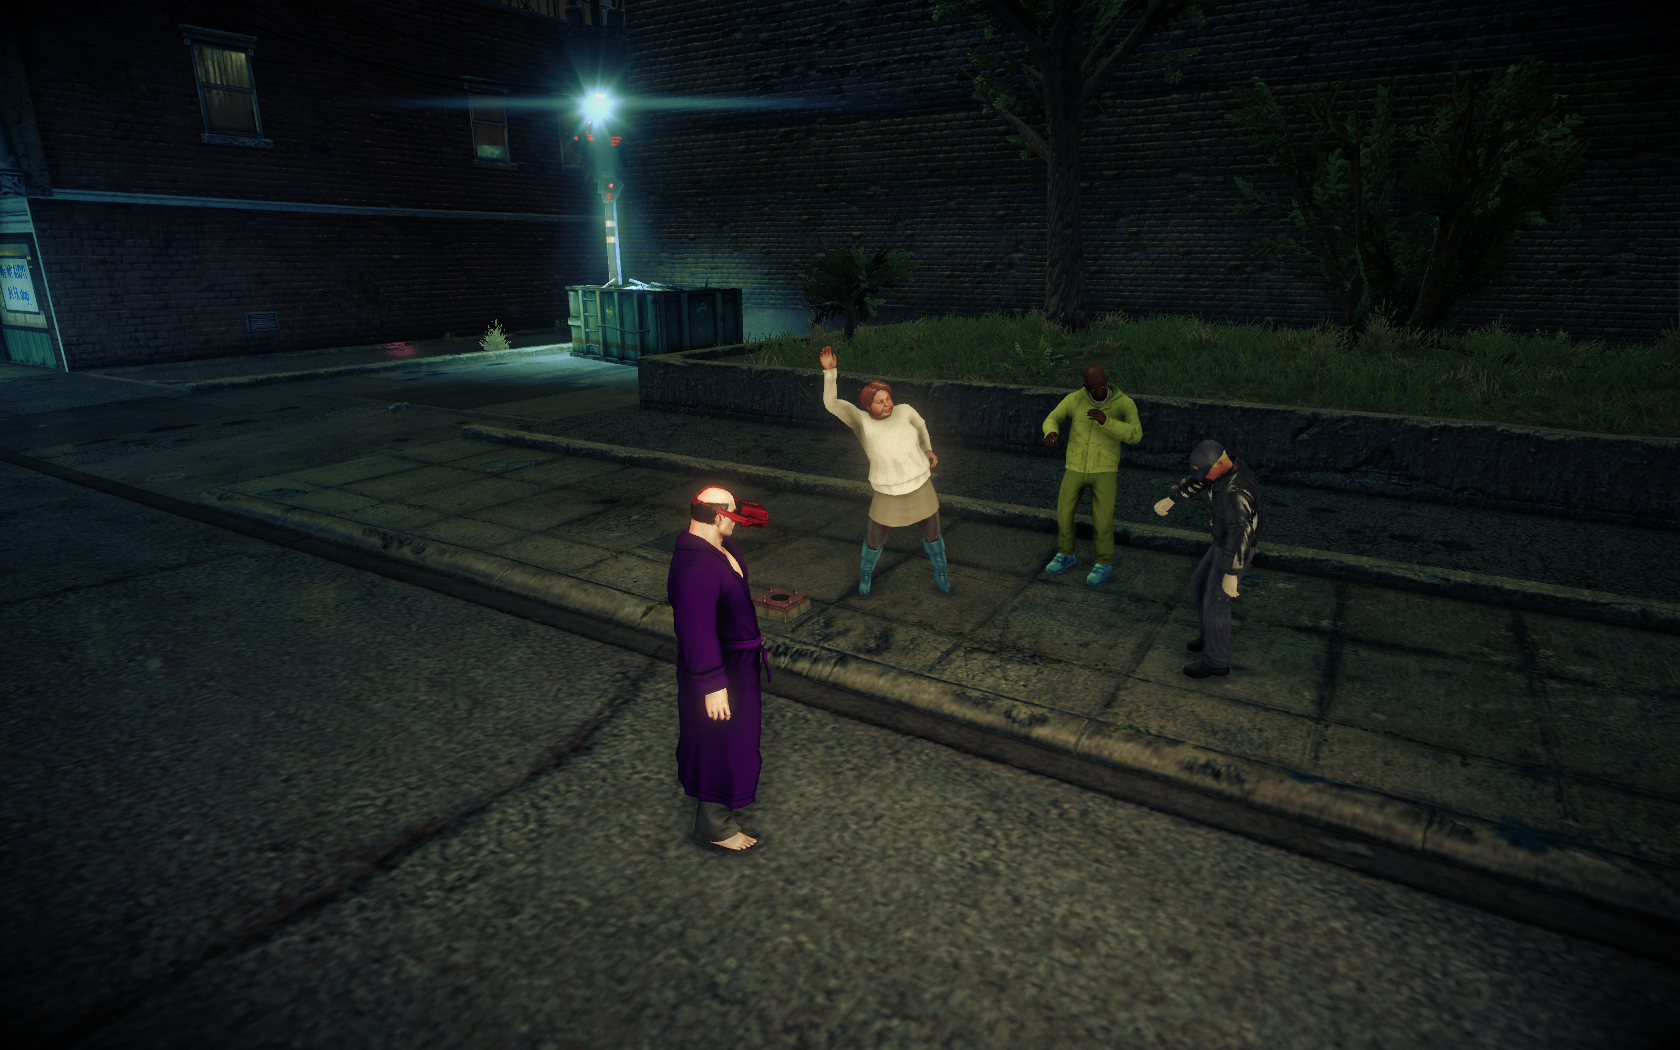 Free download gientess mod for saints row pron scenes